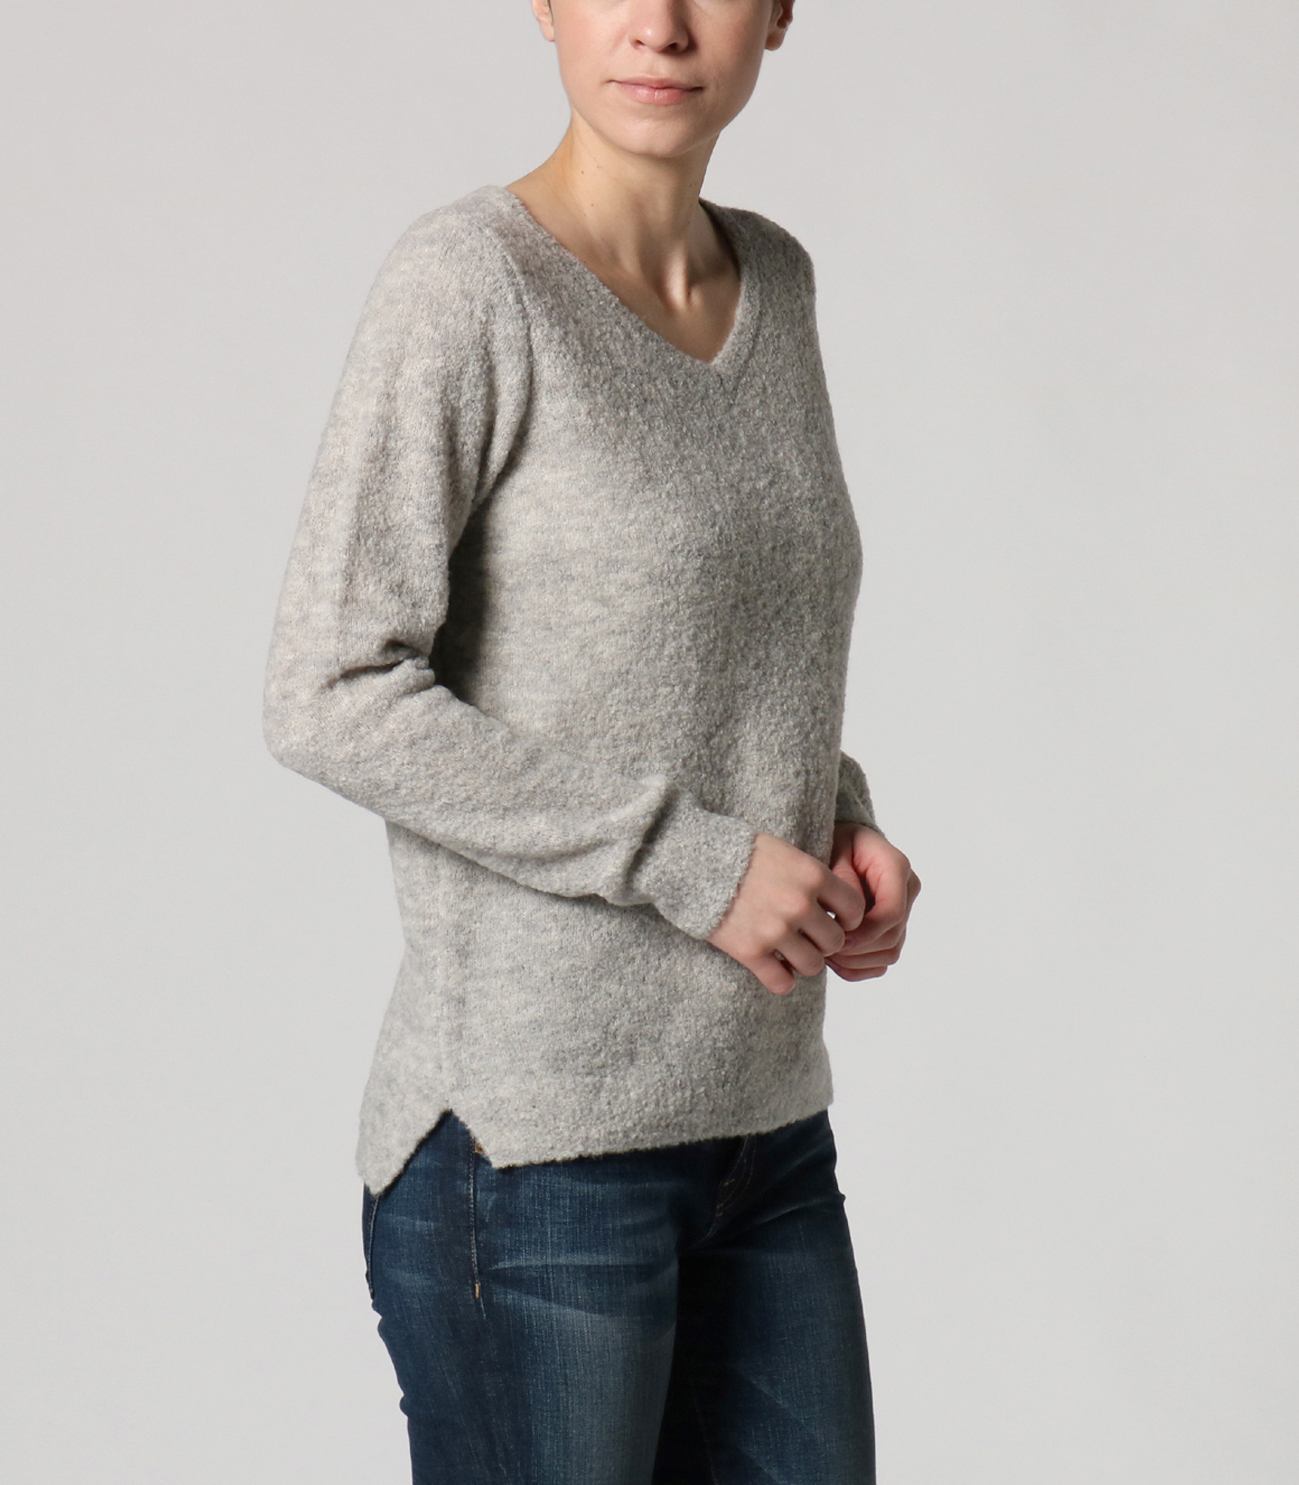 alpaca mixed boucle v neck pull 詳細画像 navy 6